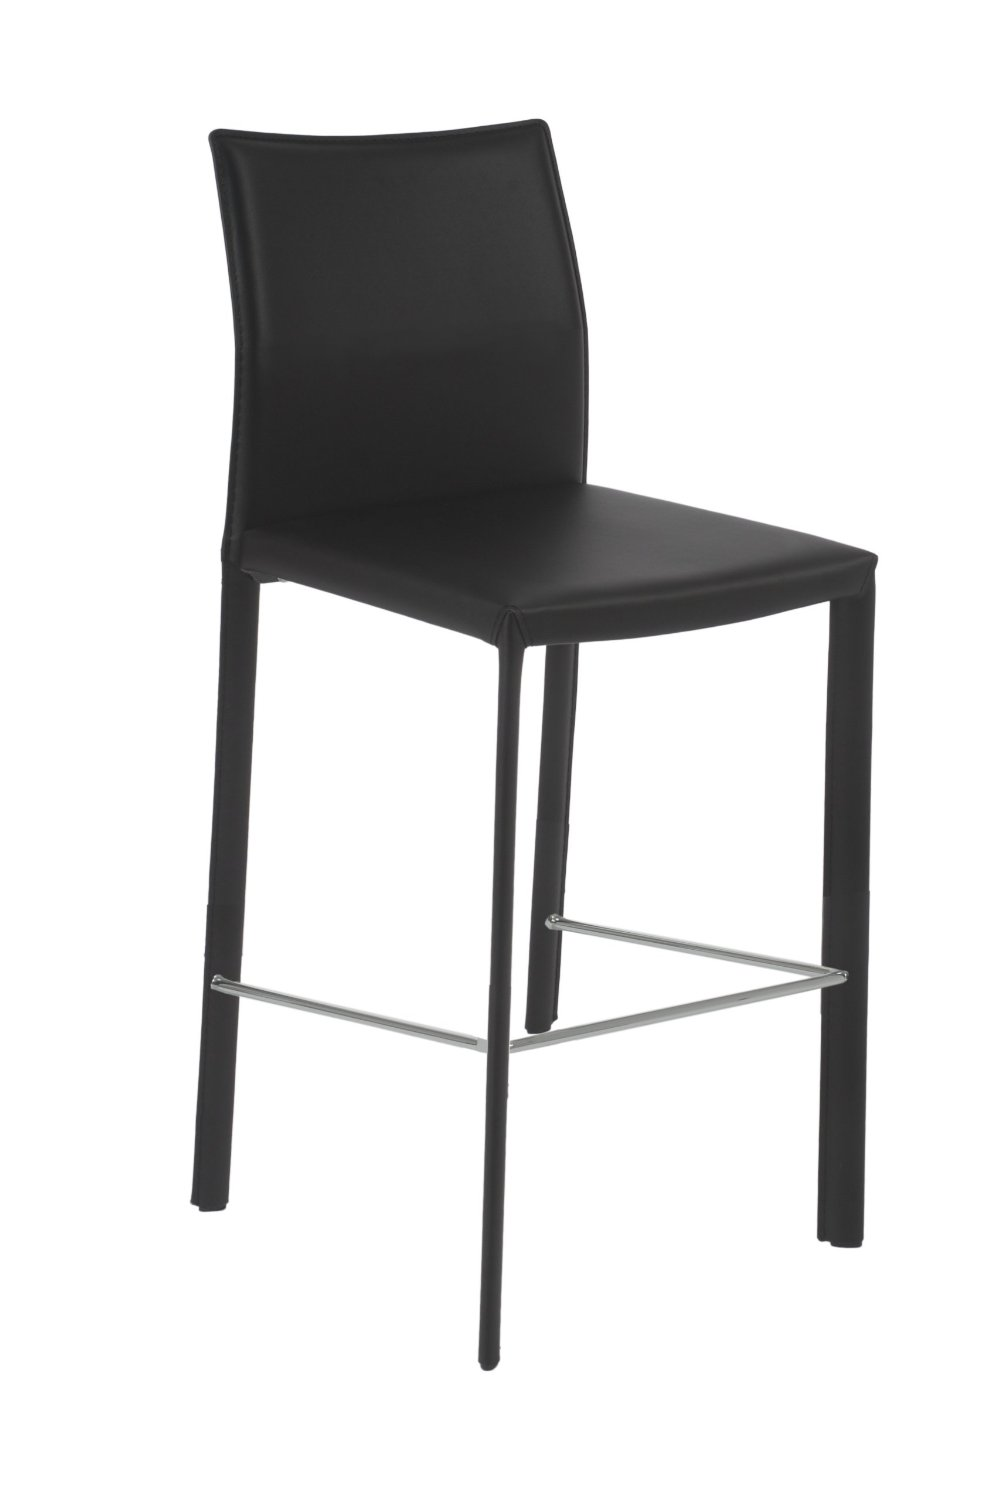 Charming Cymax Bar Stools In Black For Home Furniture Ideas